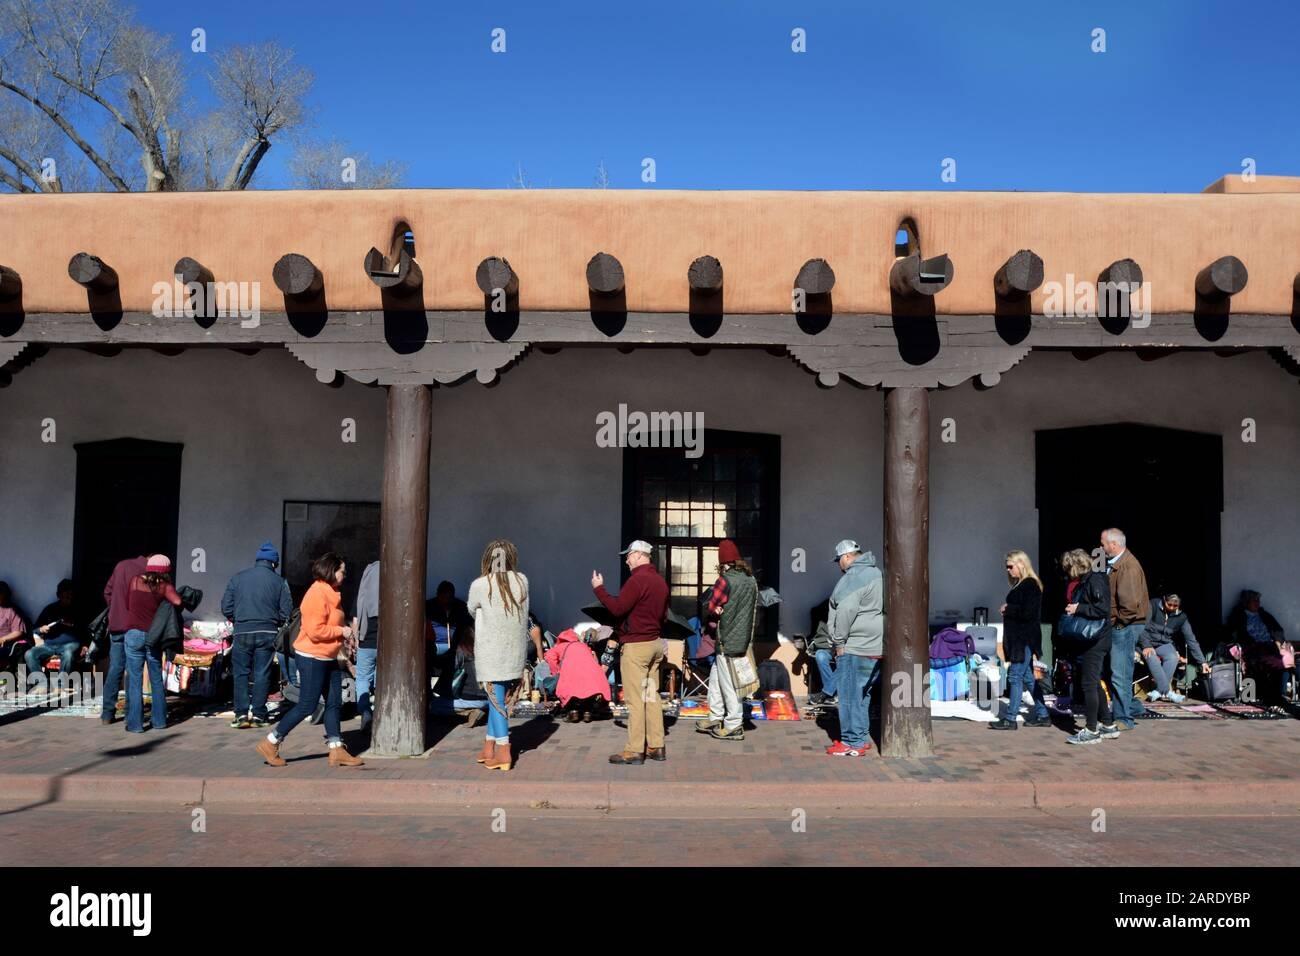 Native American Artists Sell Their Artworks In The Portal Of The Historic Palace Of The Governors In Santa Fe New Mexico Stock Photo Alamy